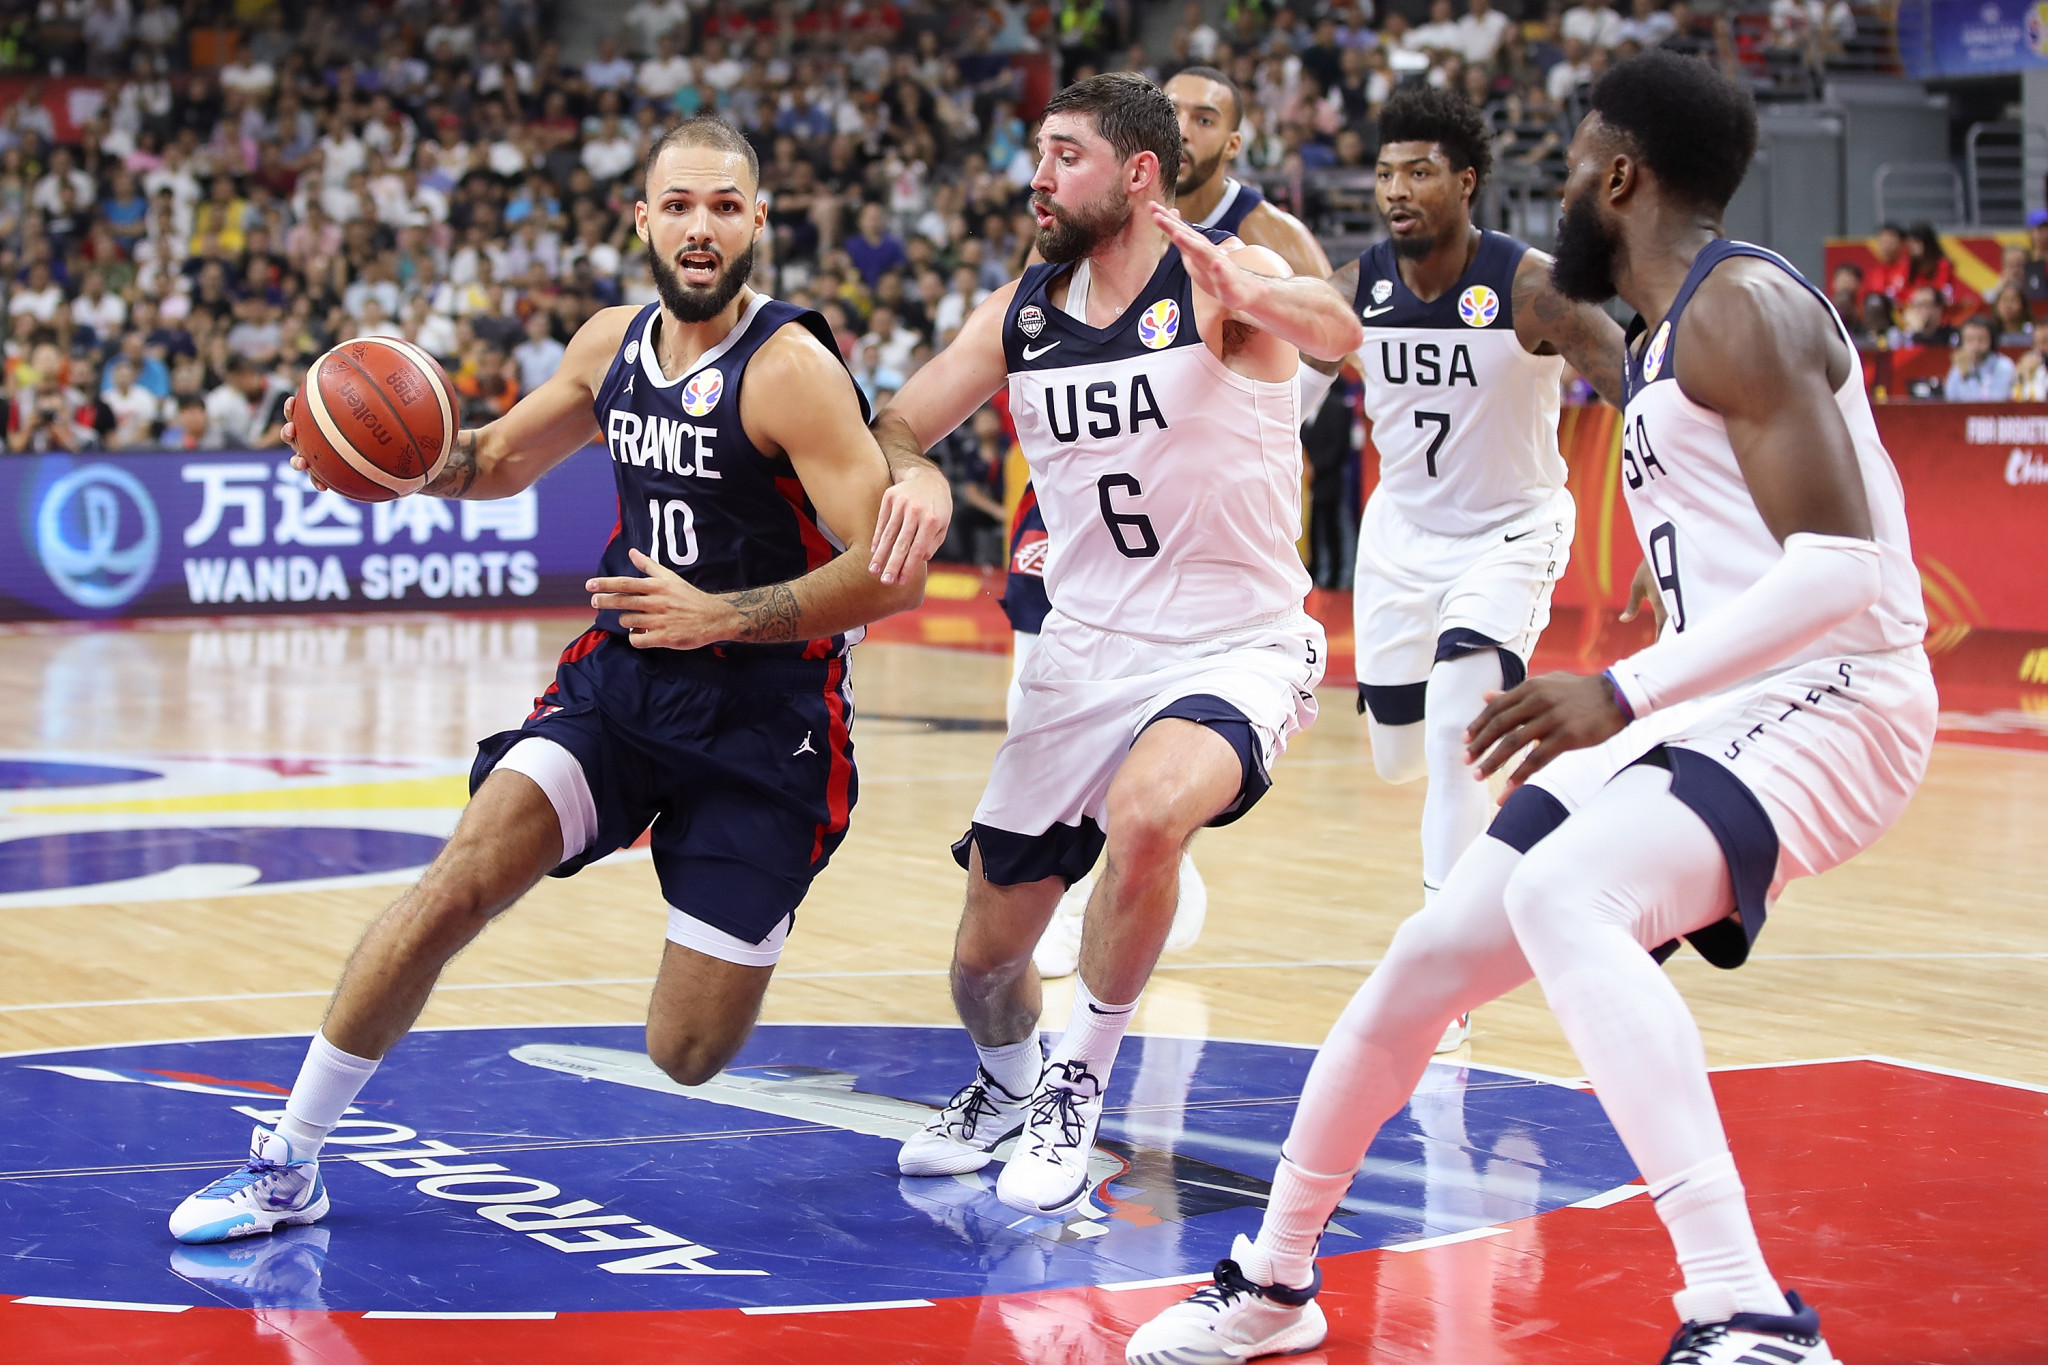 France stun holders US to reach semi-finals at FIBA World Cup